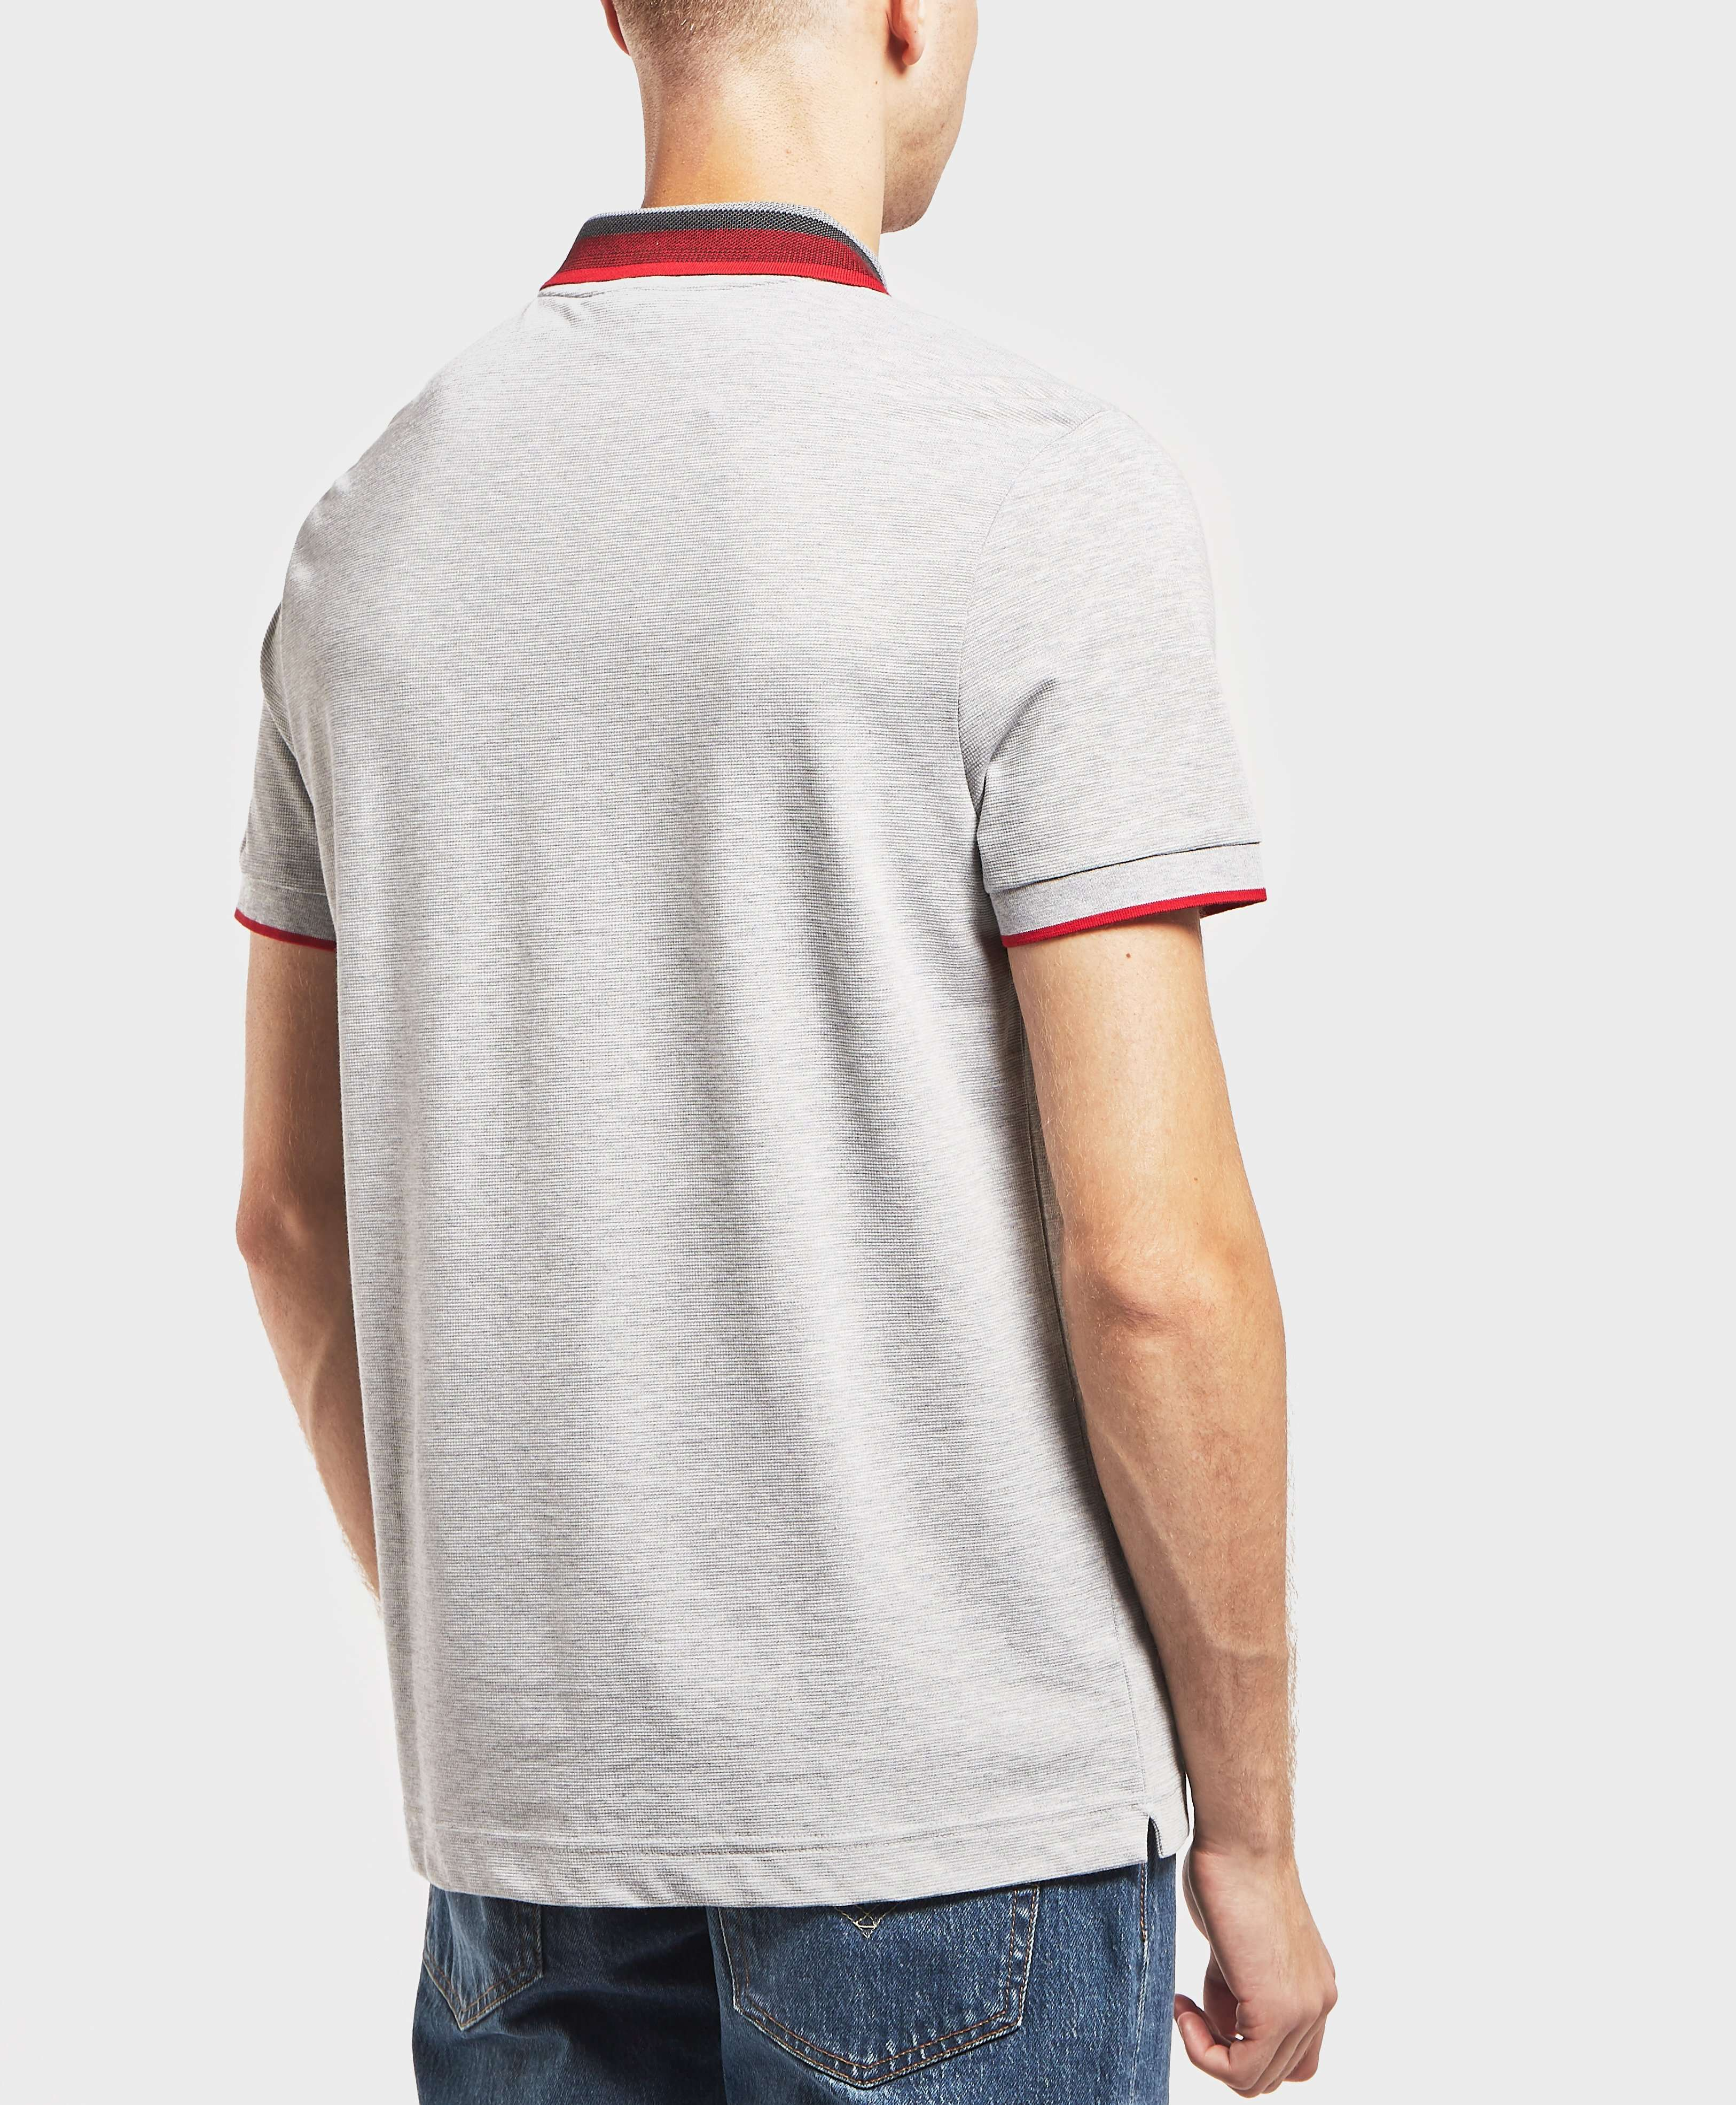 Lacoste Multi Tipped Short Sleeve Polo Shirt